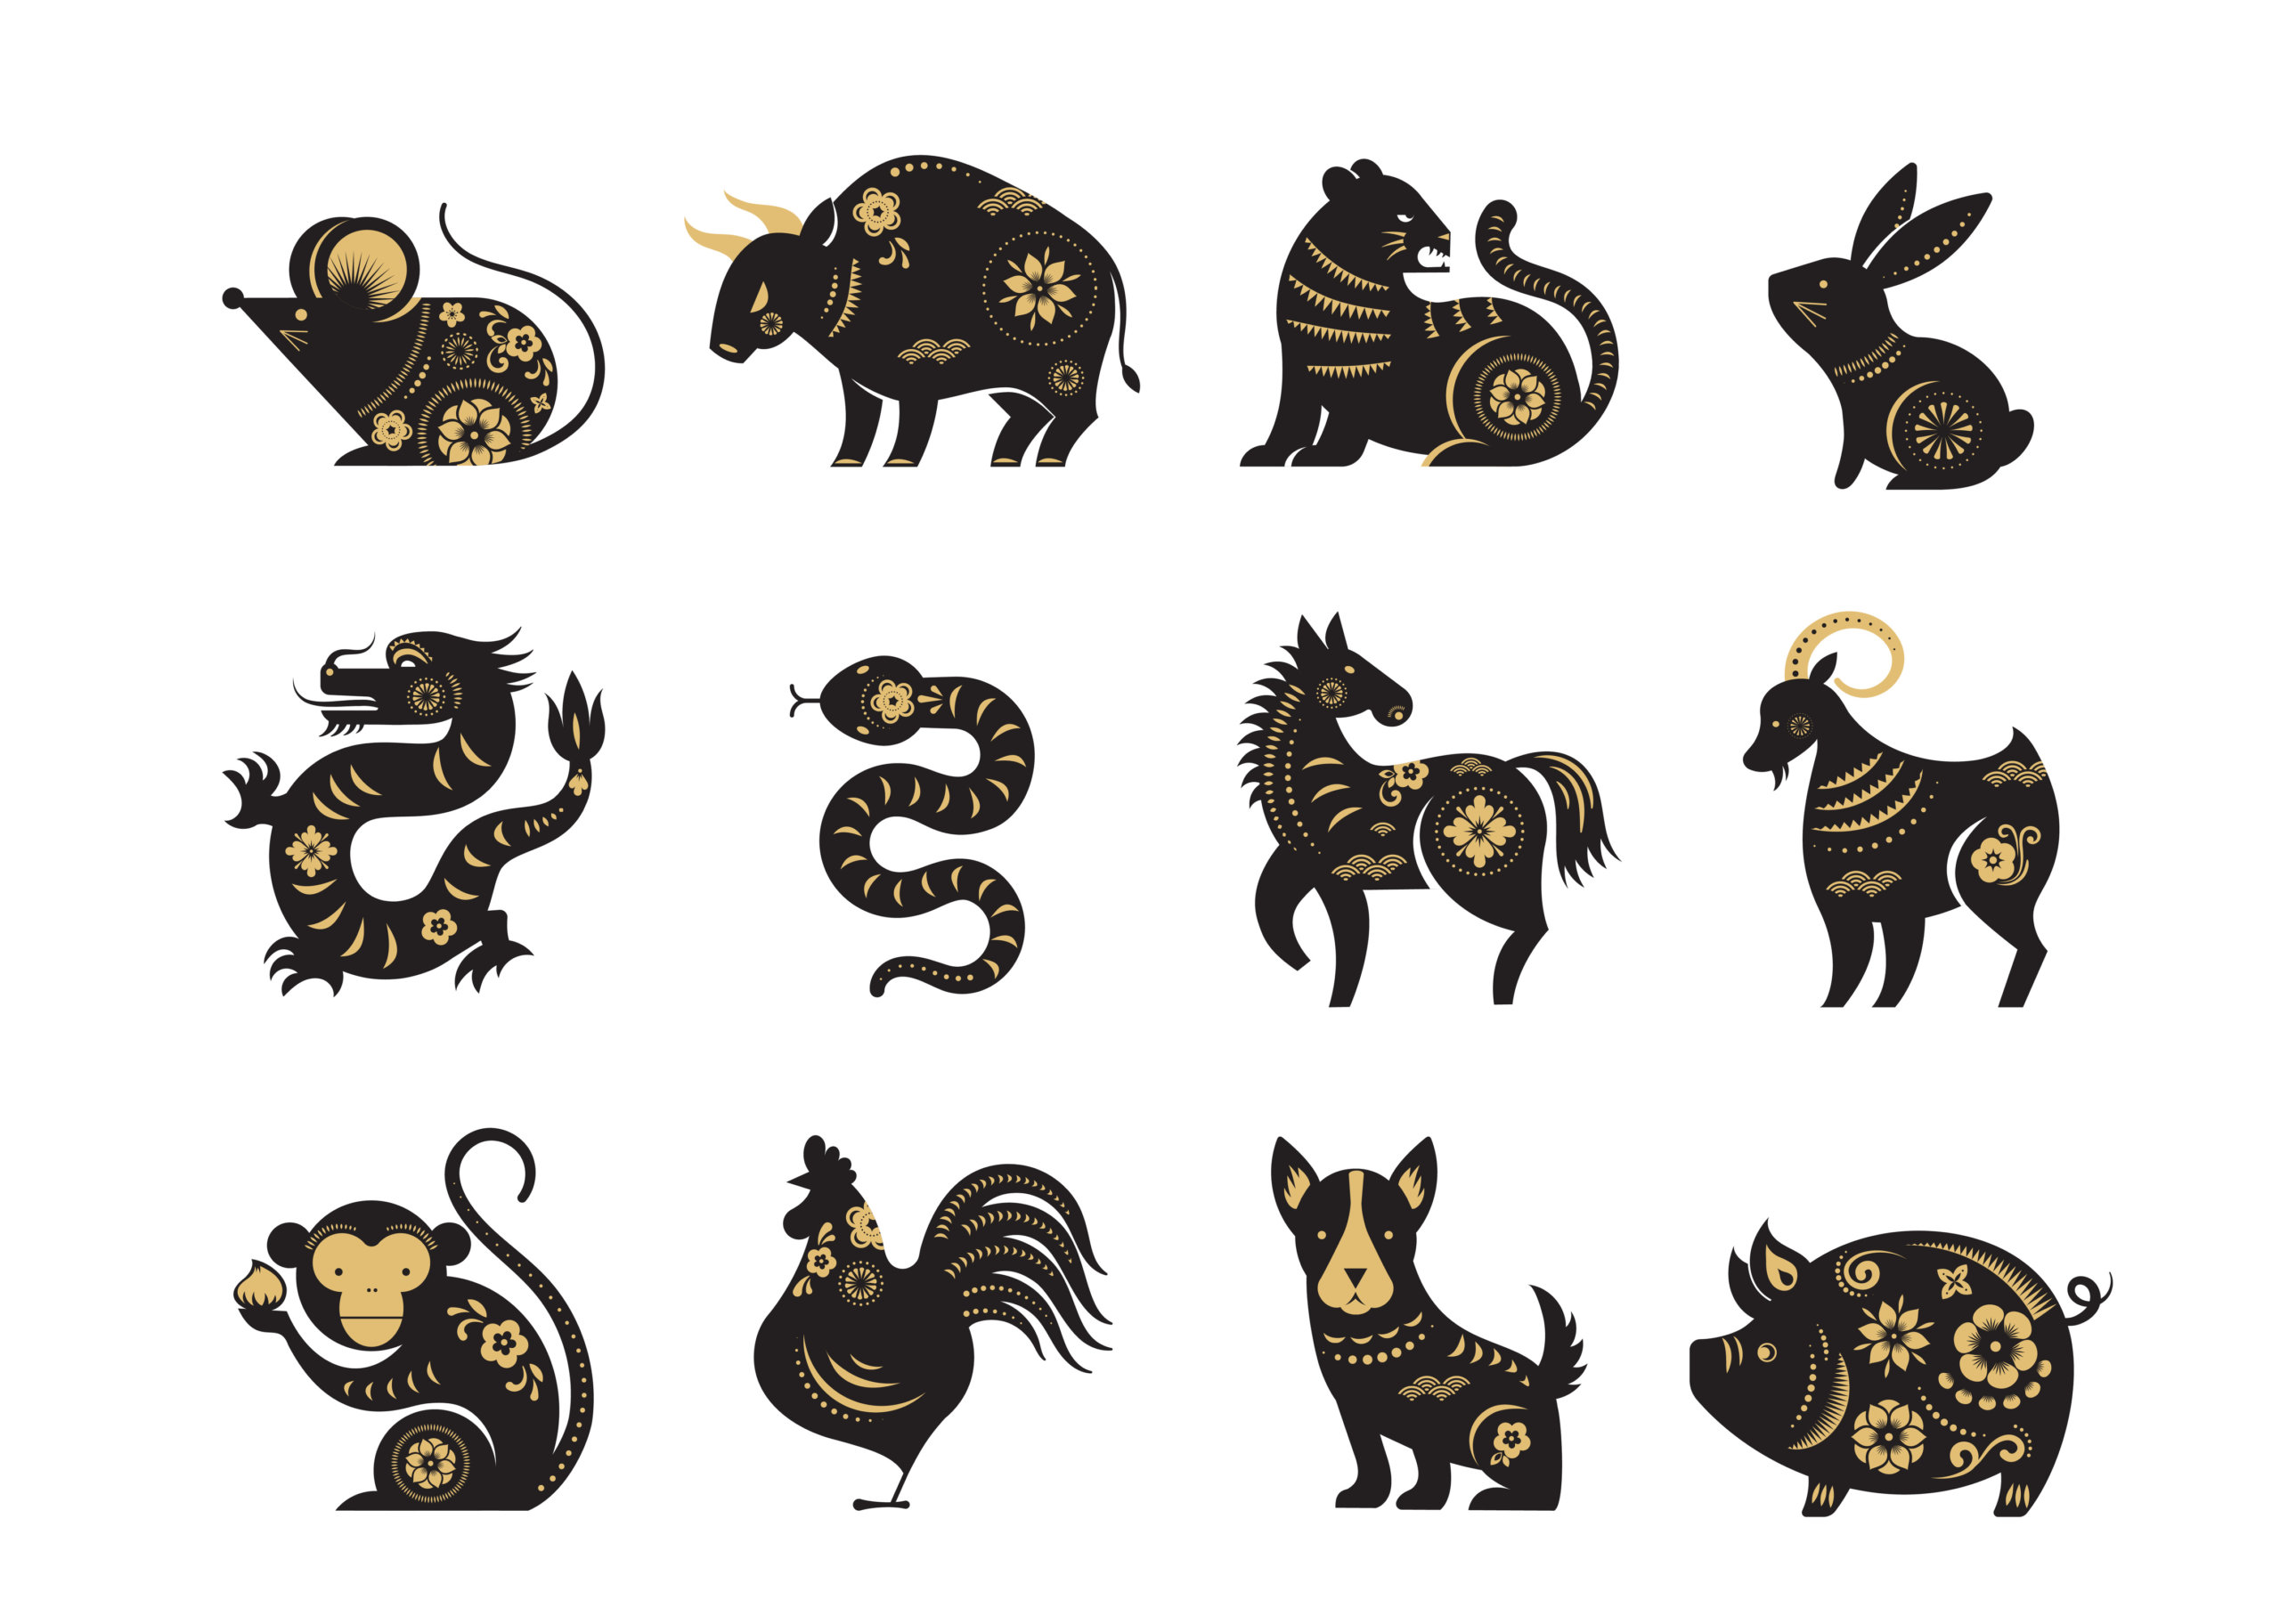 chinese new year, zodiac signs, papercut icons and symbols vector illustrations